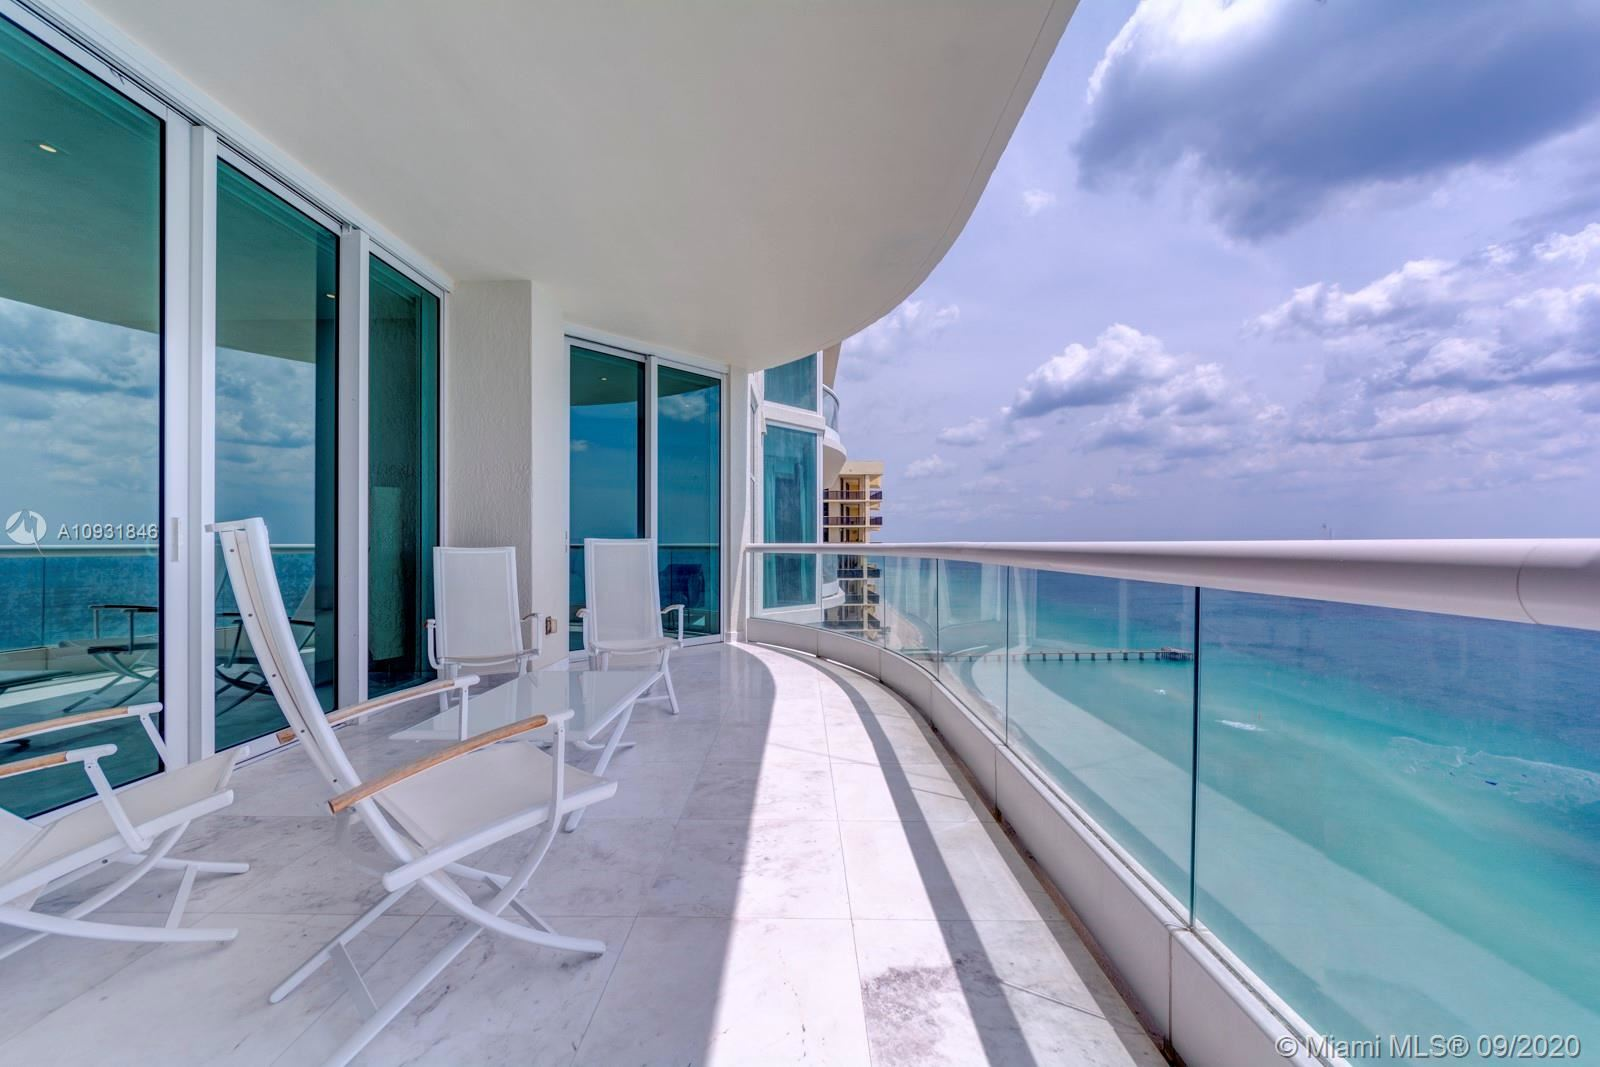 16051 Collins Ave #2702, Sunny Isles, FL 33160 - #: A10931846